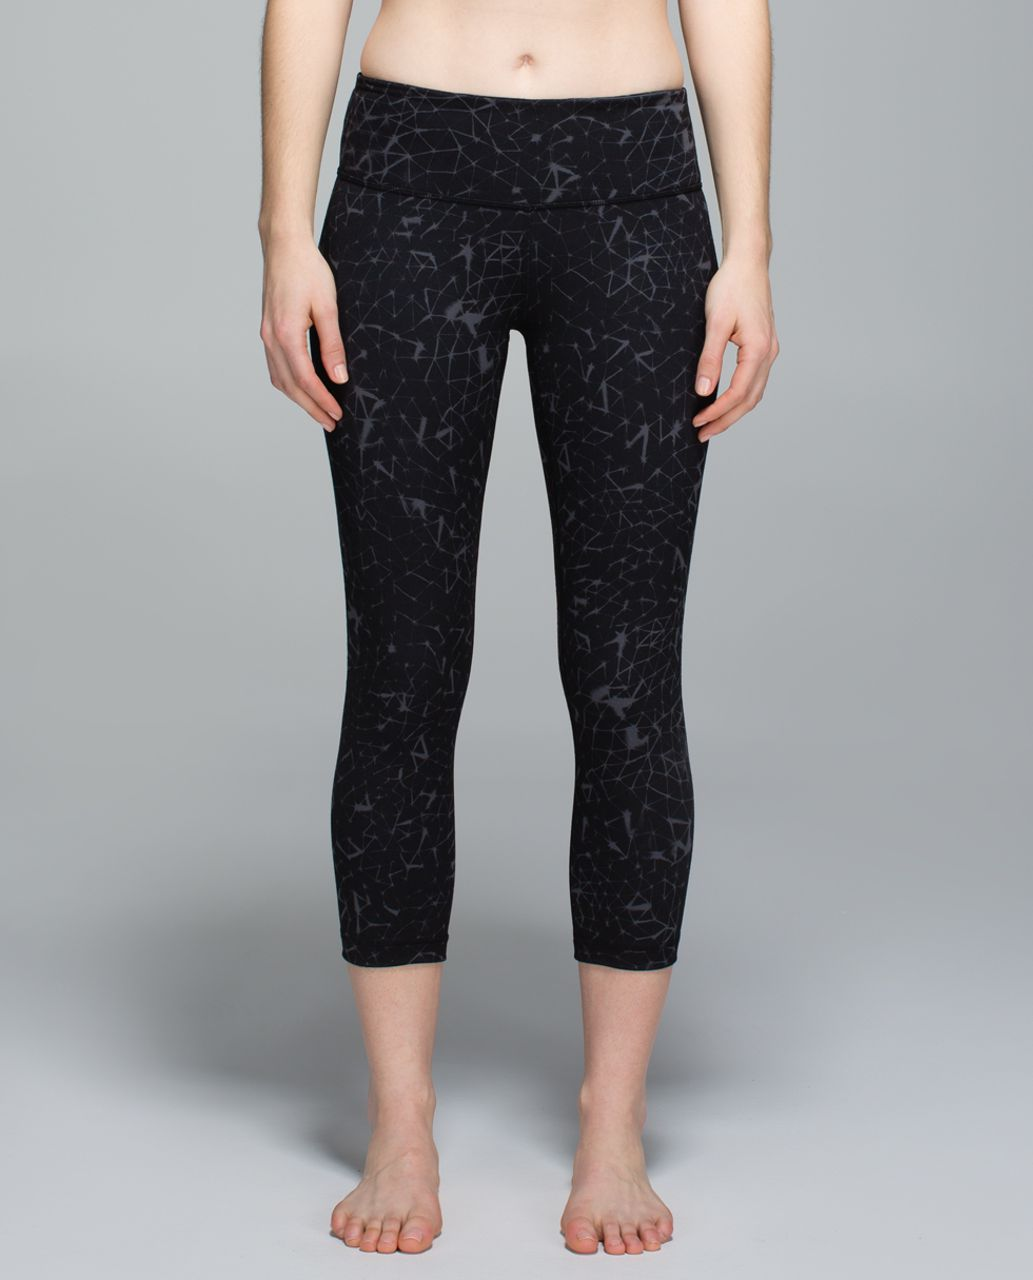 Lululemon Wunder Under Crop II *Full-On Luon - Star Crushed Coal Black